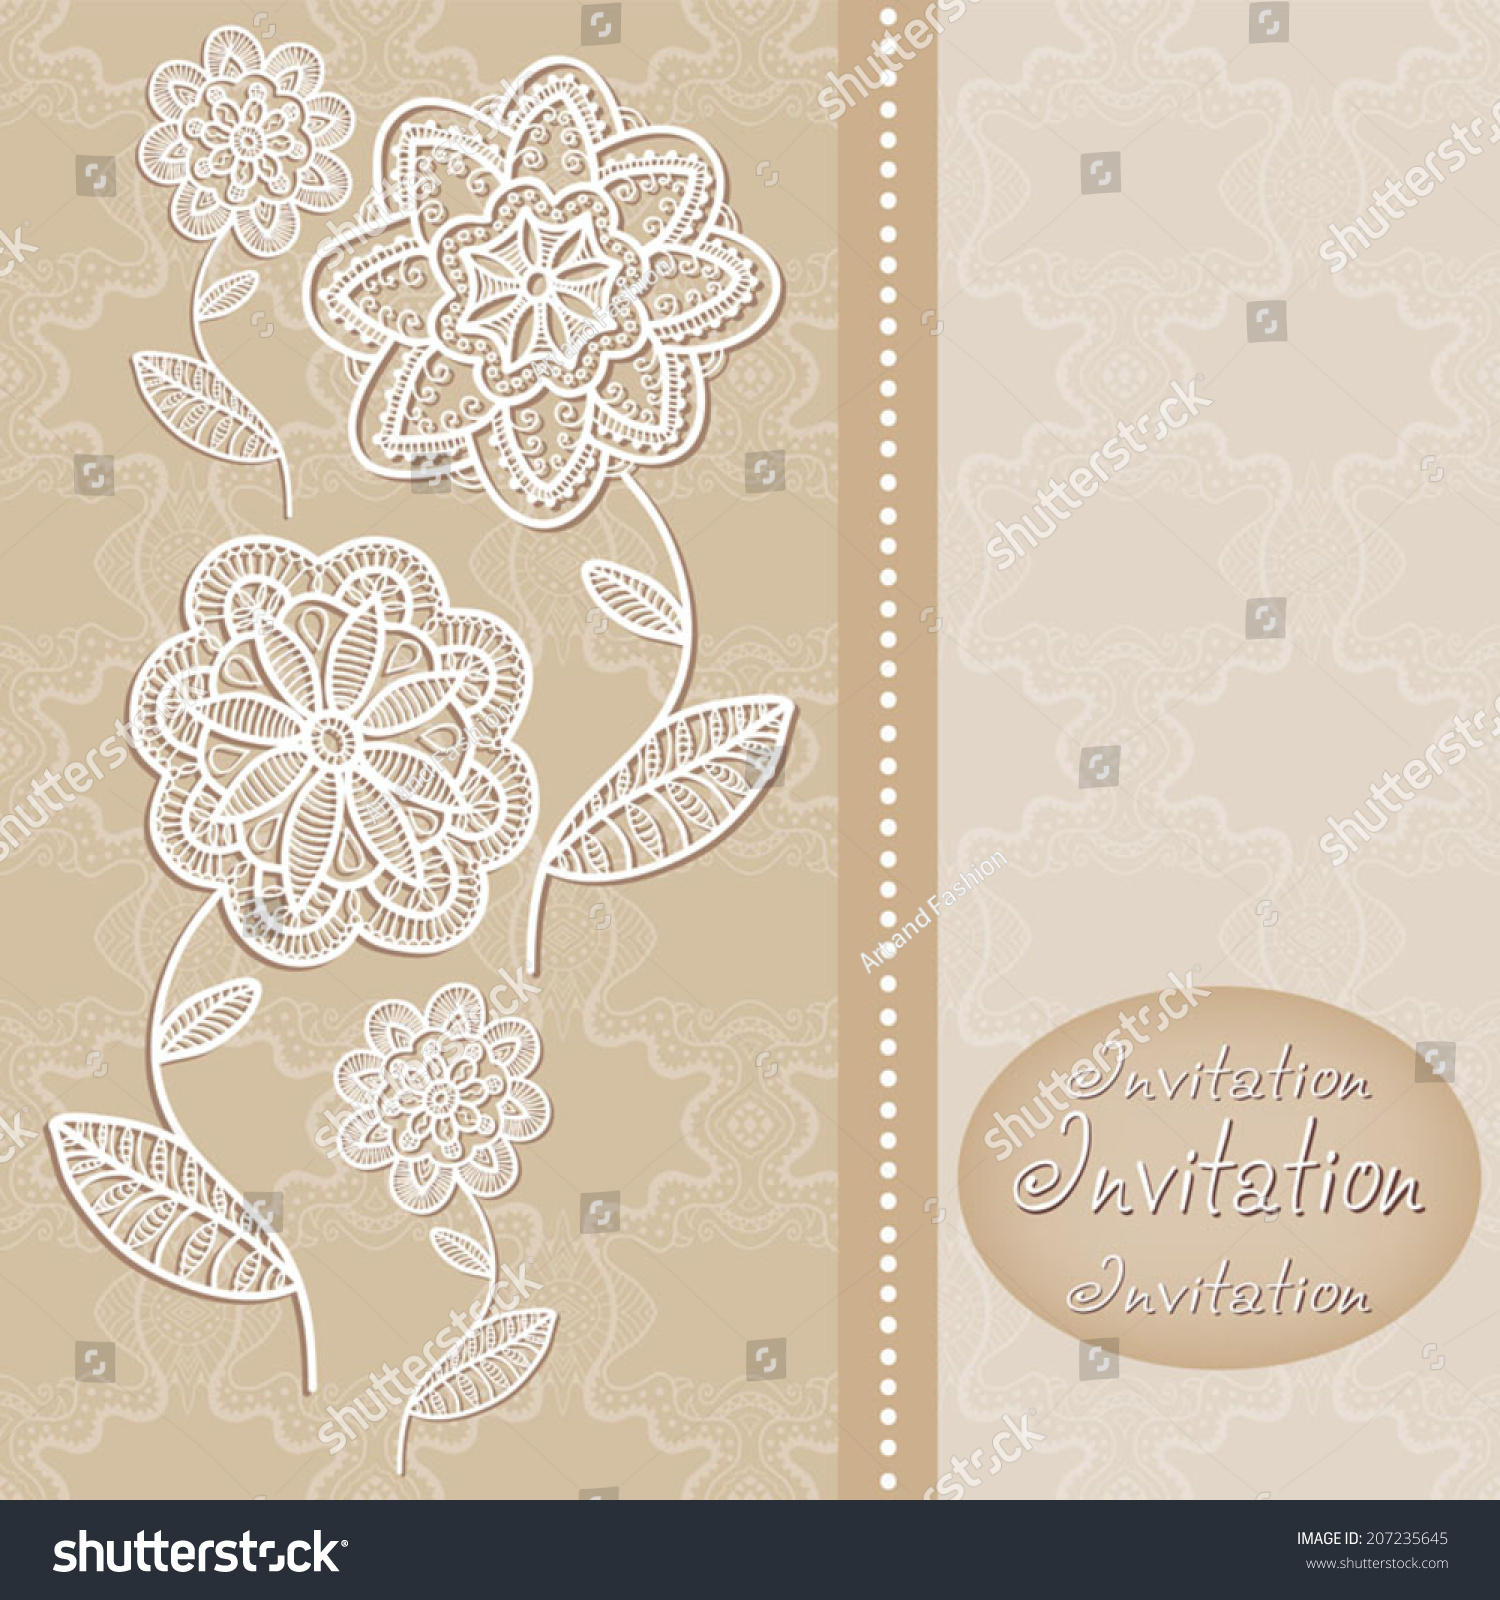 Abstract Flowers In Graphic Style, Lace Frame Border